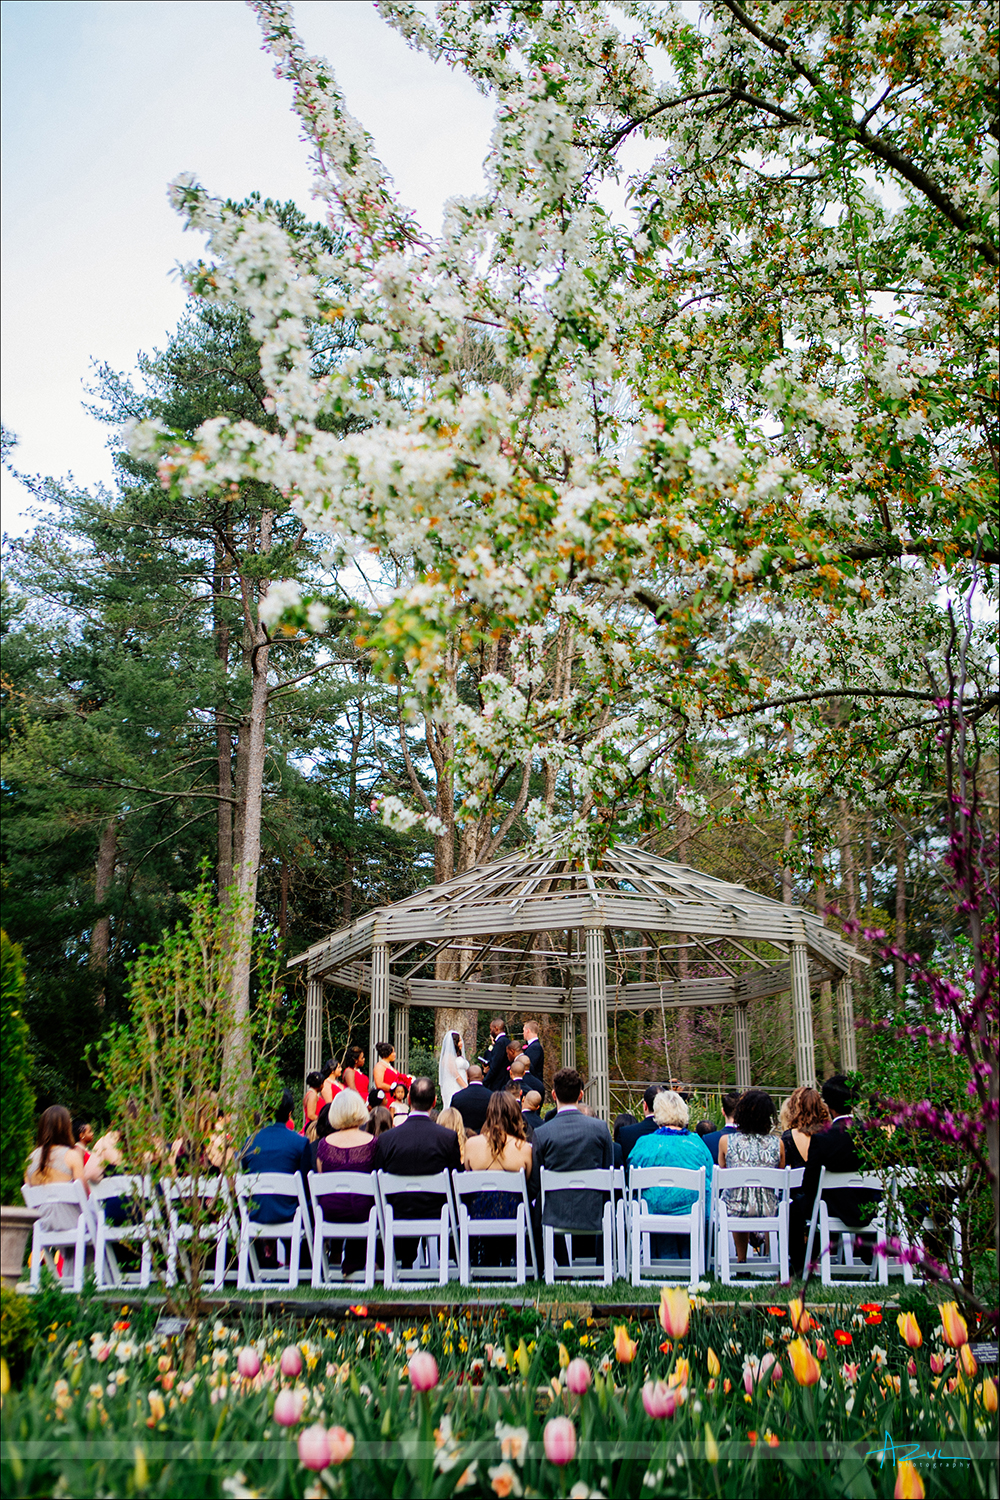 Beautiful wedding day flowers created by nature at Duke Gardens